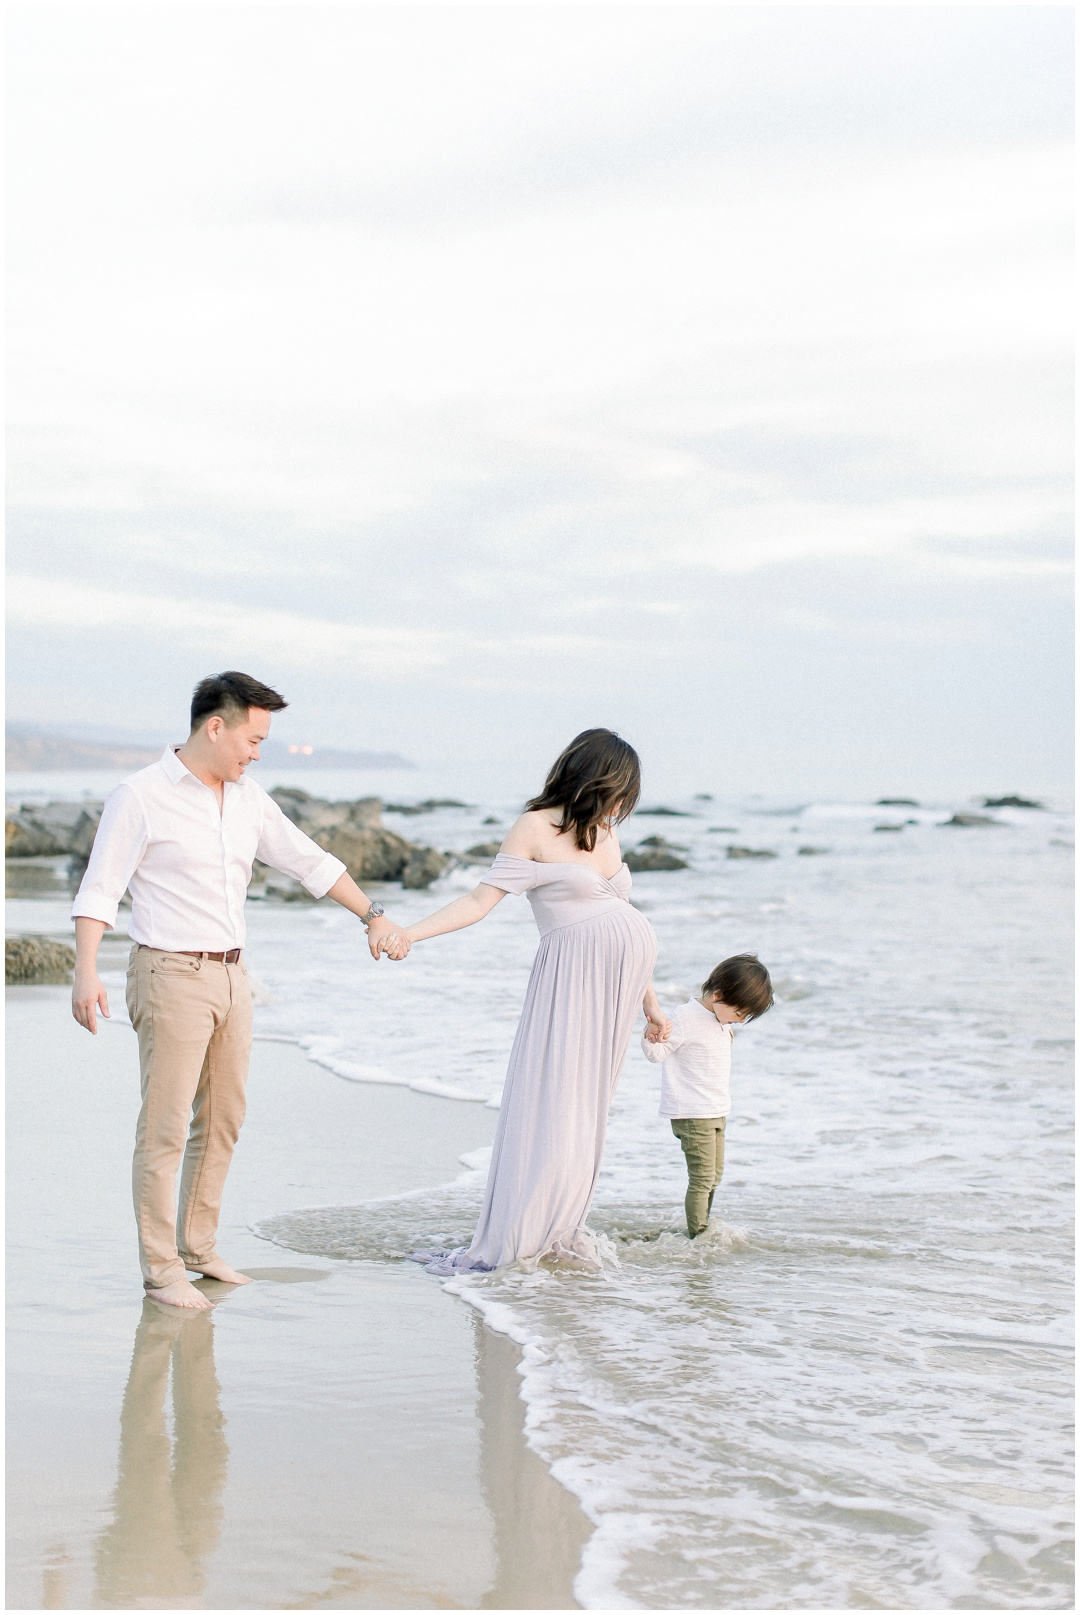 Newport_Beach_Newborn_Photographer_Newport_Beach_Maternity_Photographer_Orange_County_Family_Photographer_Cori_Kleckner_Photography_Huntington_Beach_Photographer_The_Perez_Family_OC_Maternity__2993.jpg